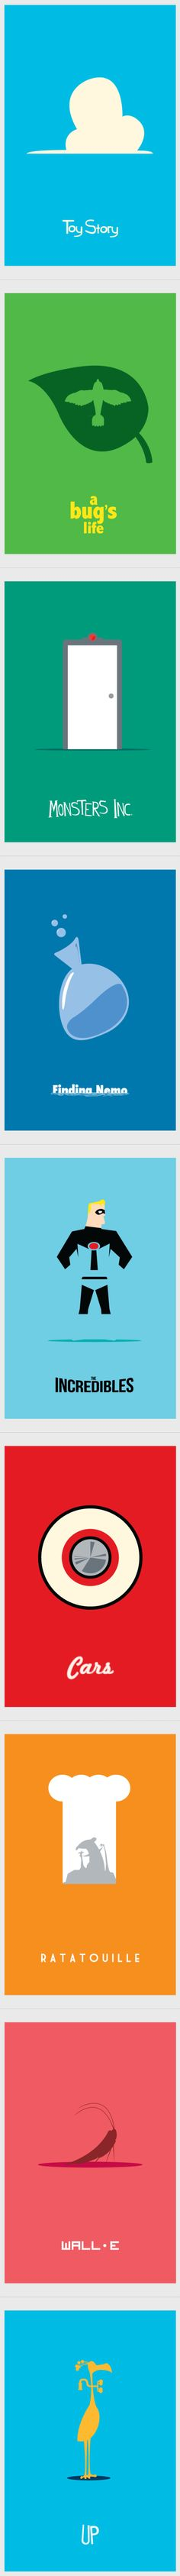 Pixar Minimalist Movie Posters by Adam Thompson